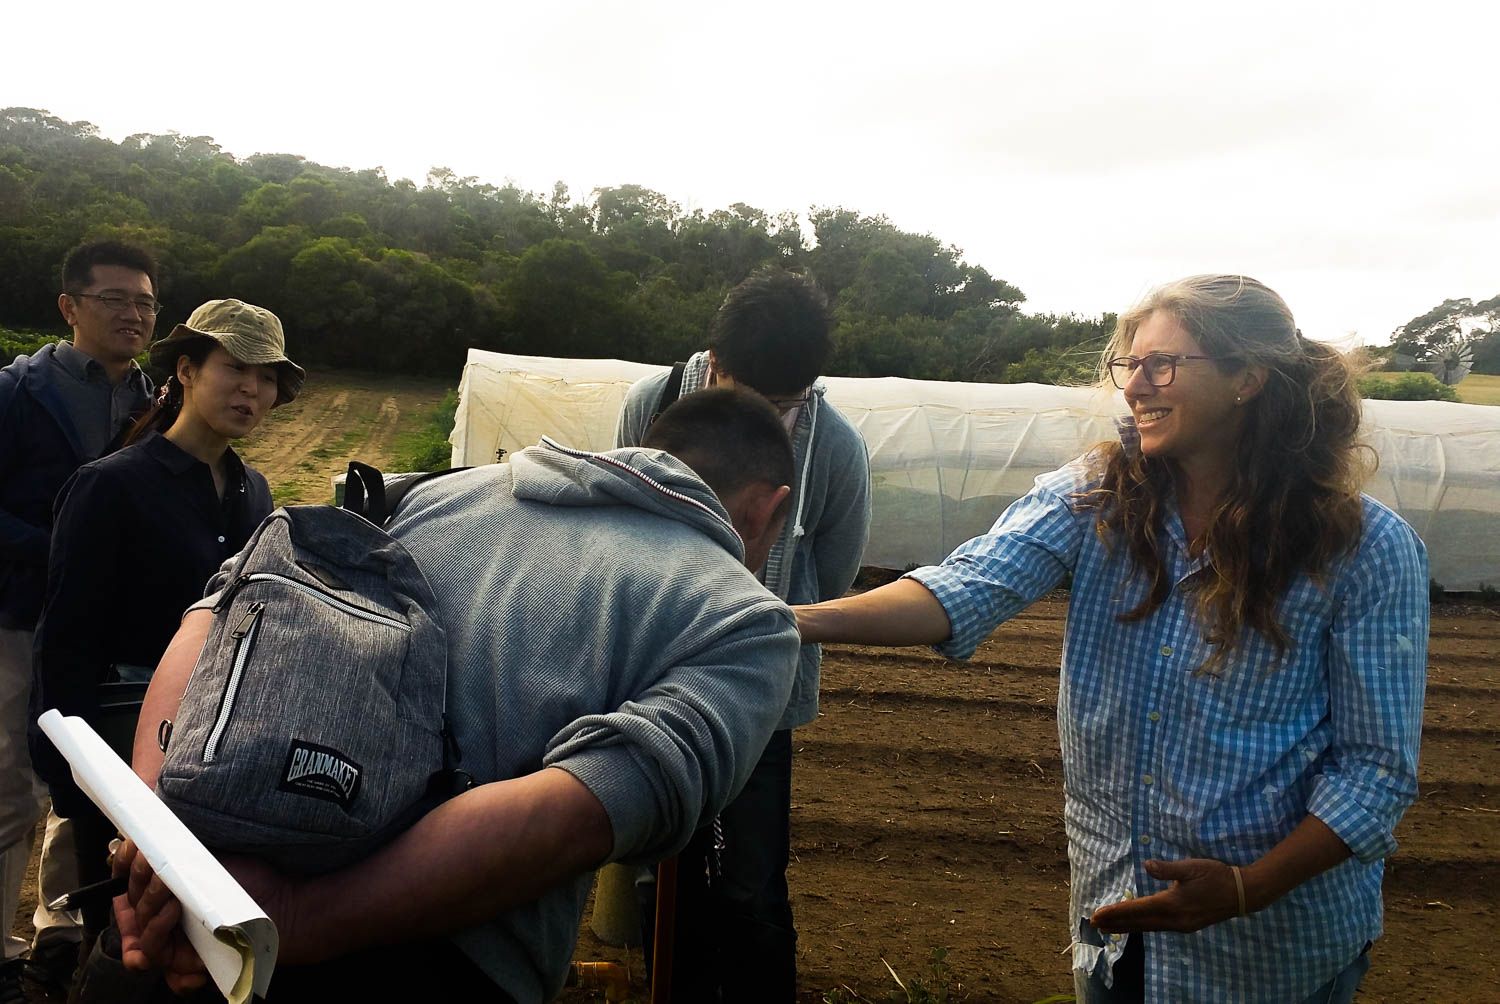 Language barriers are overcome as Robin gives a group of Japanese farmers interested in organic farming techniques a handful of soil to smell, taste and touch.